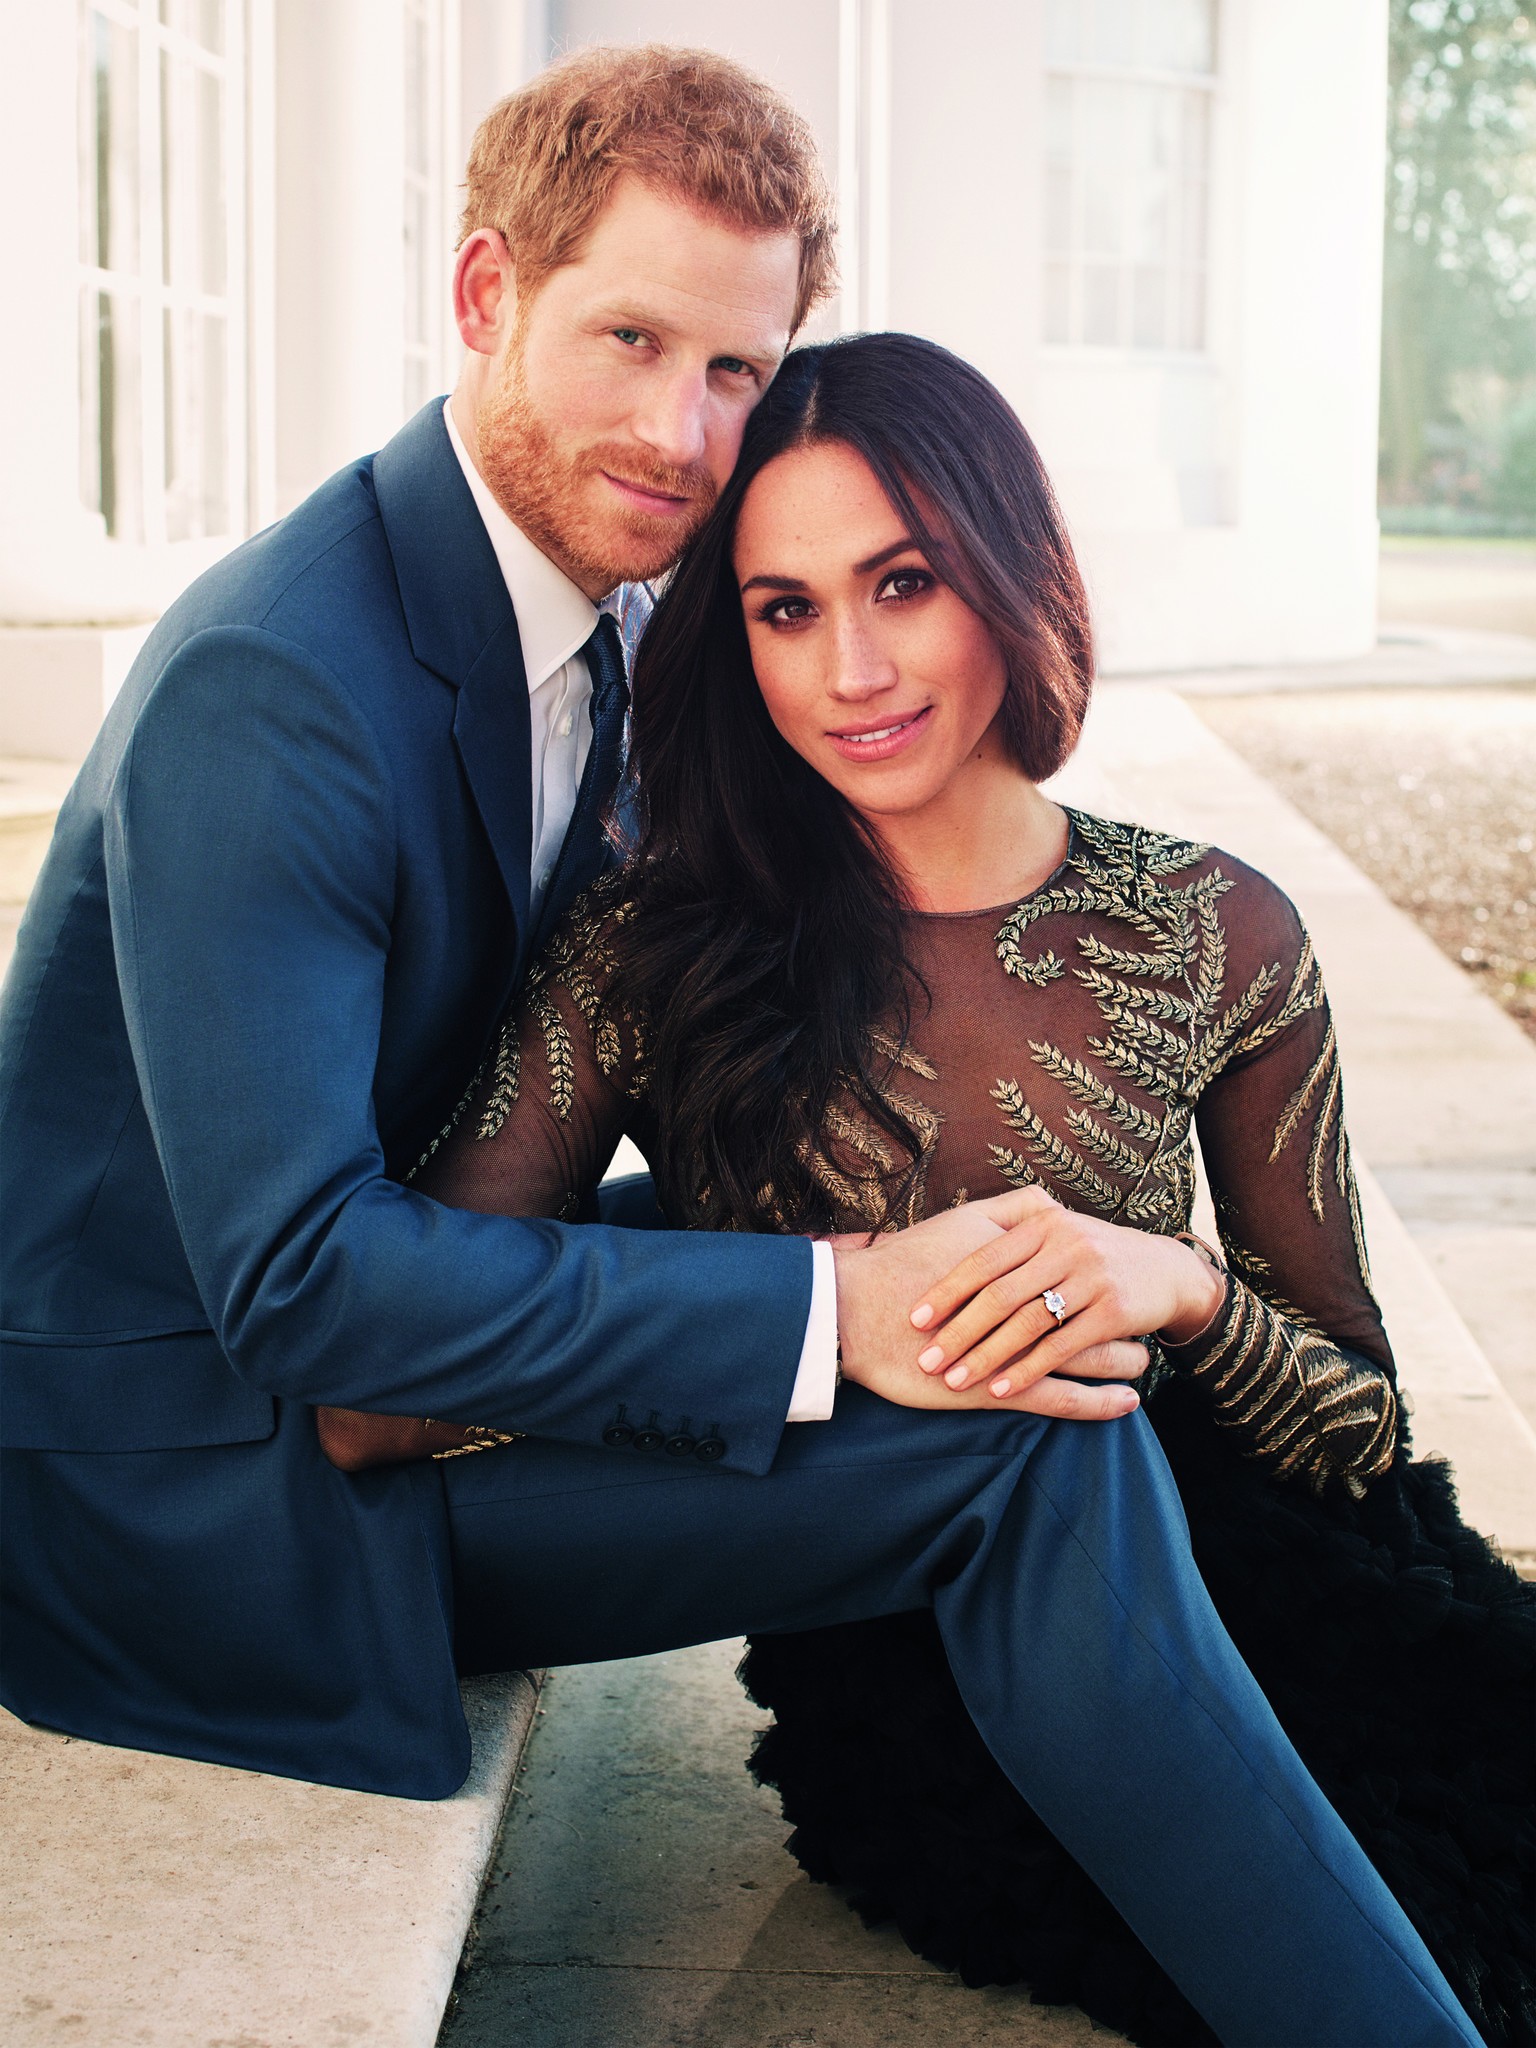 Prince Harry and fiancé Meghan Markle, who's wearing a Ralph & Russo dress, pose for official engagement photos at Frogmore House in December 2017 in Windsor, United Kingdom.